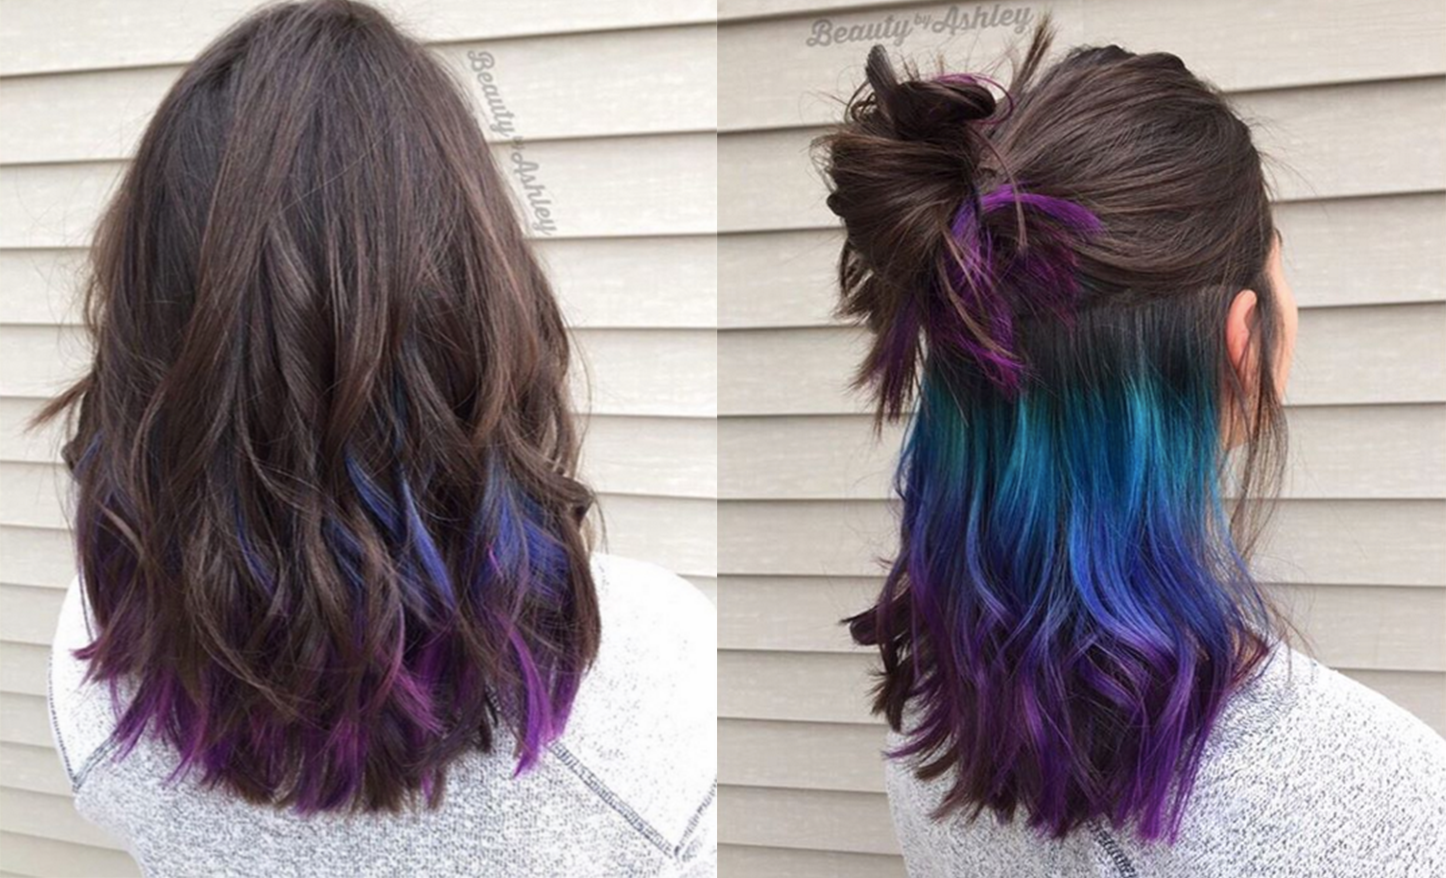 Underlights: The rainbow hair-dye you can sport at the office #hairmakeup